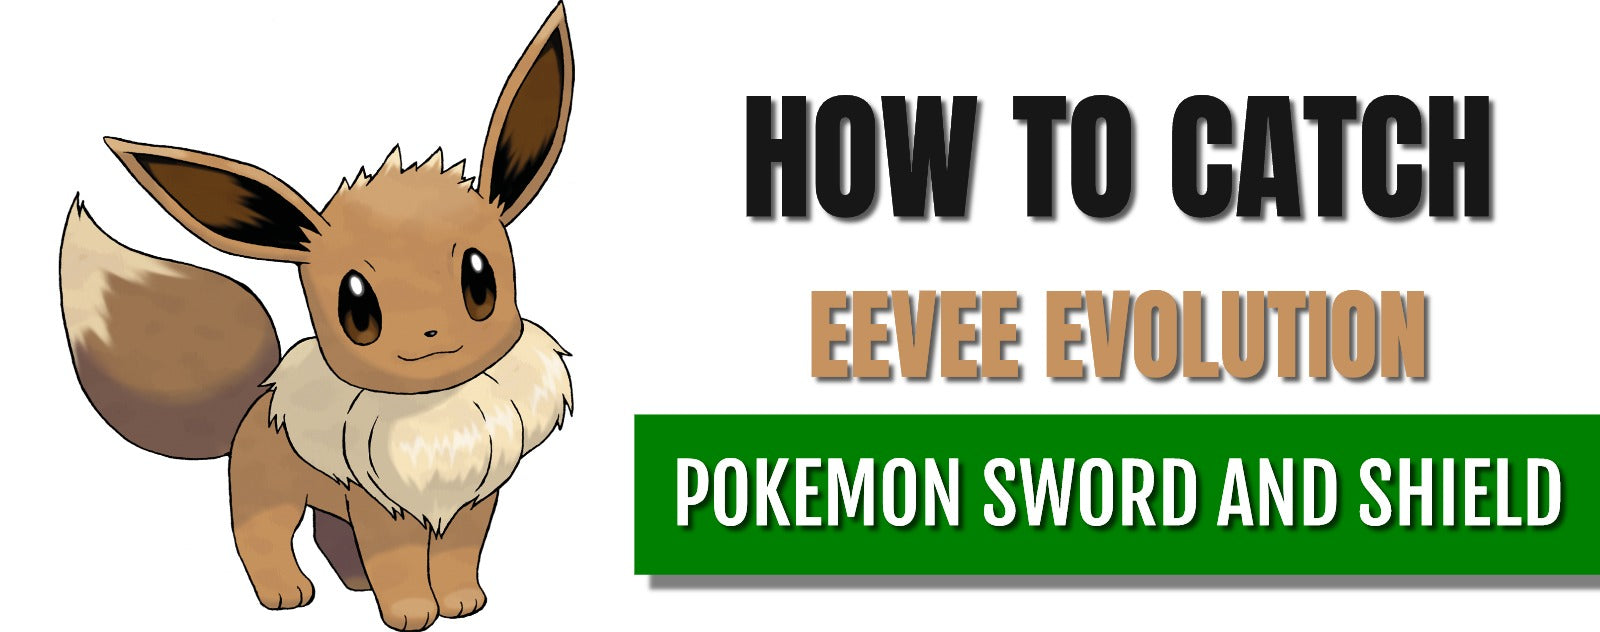 How to catch eevee evolution in pokemon sword and shield